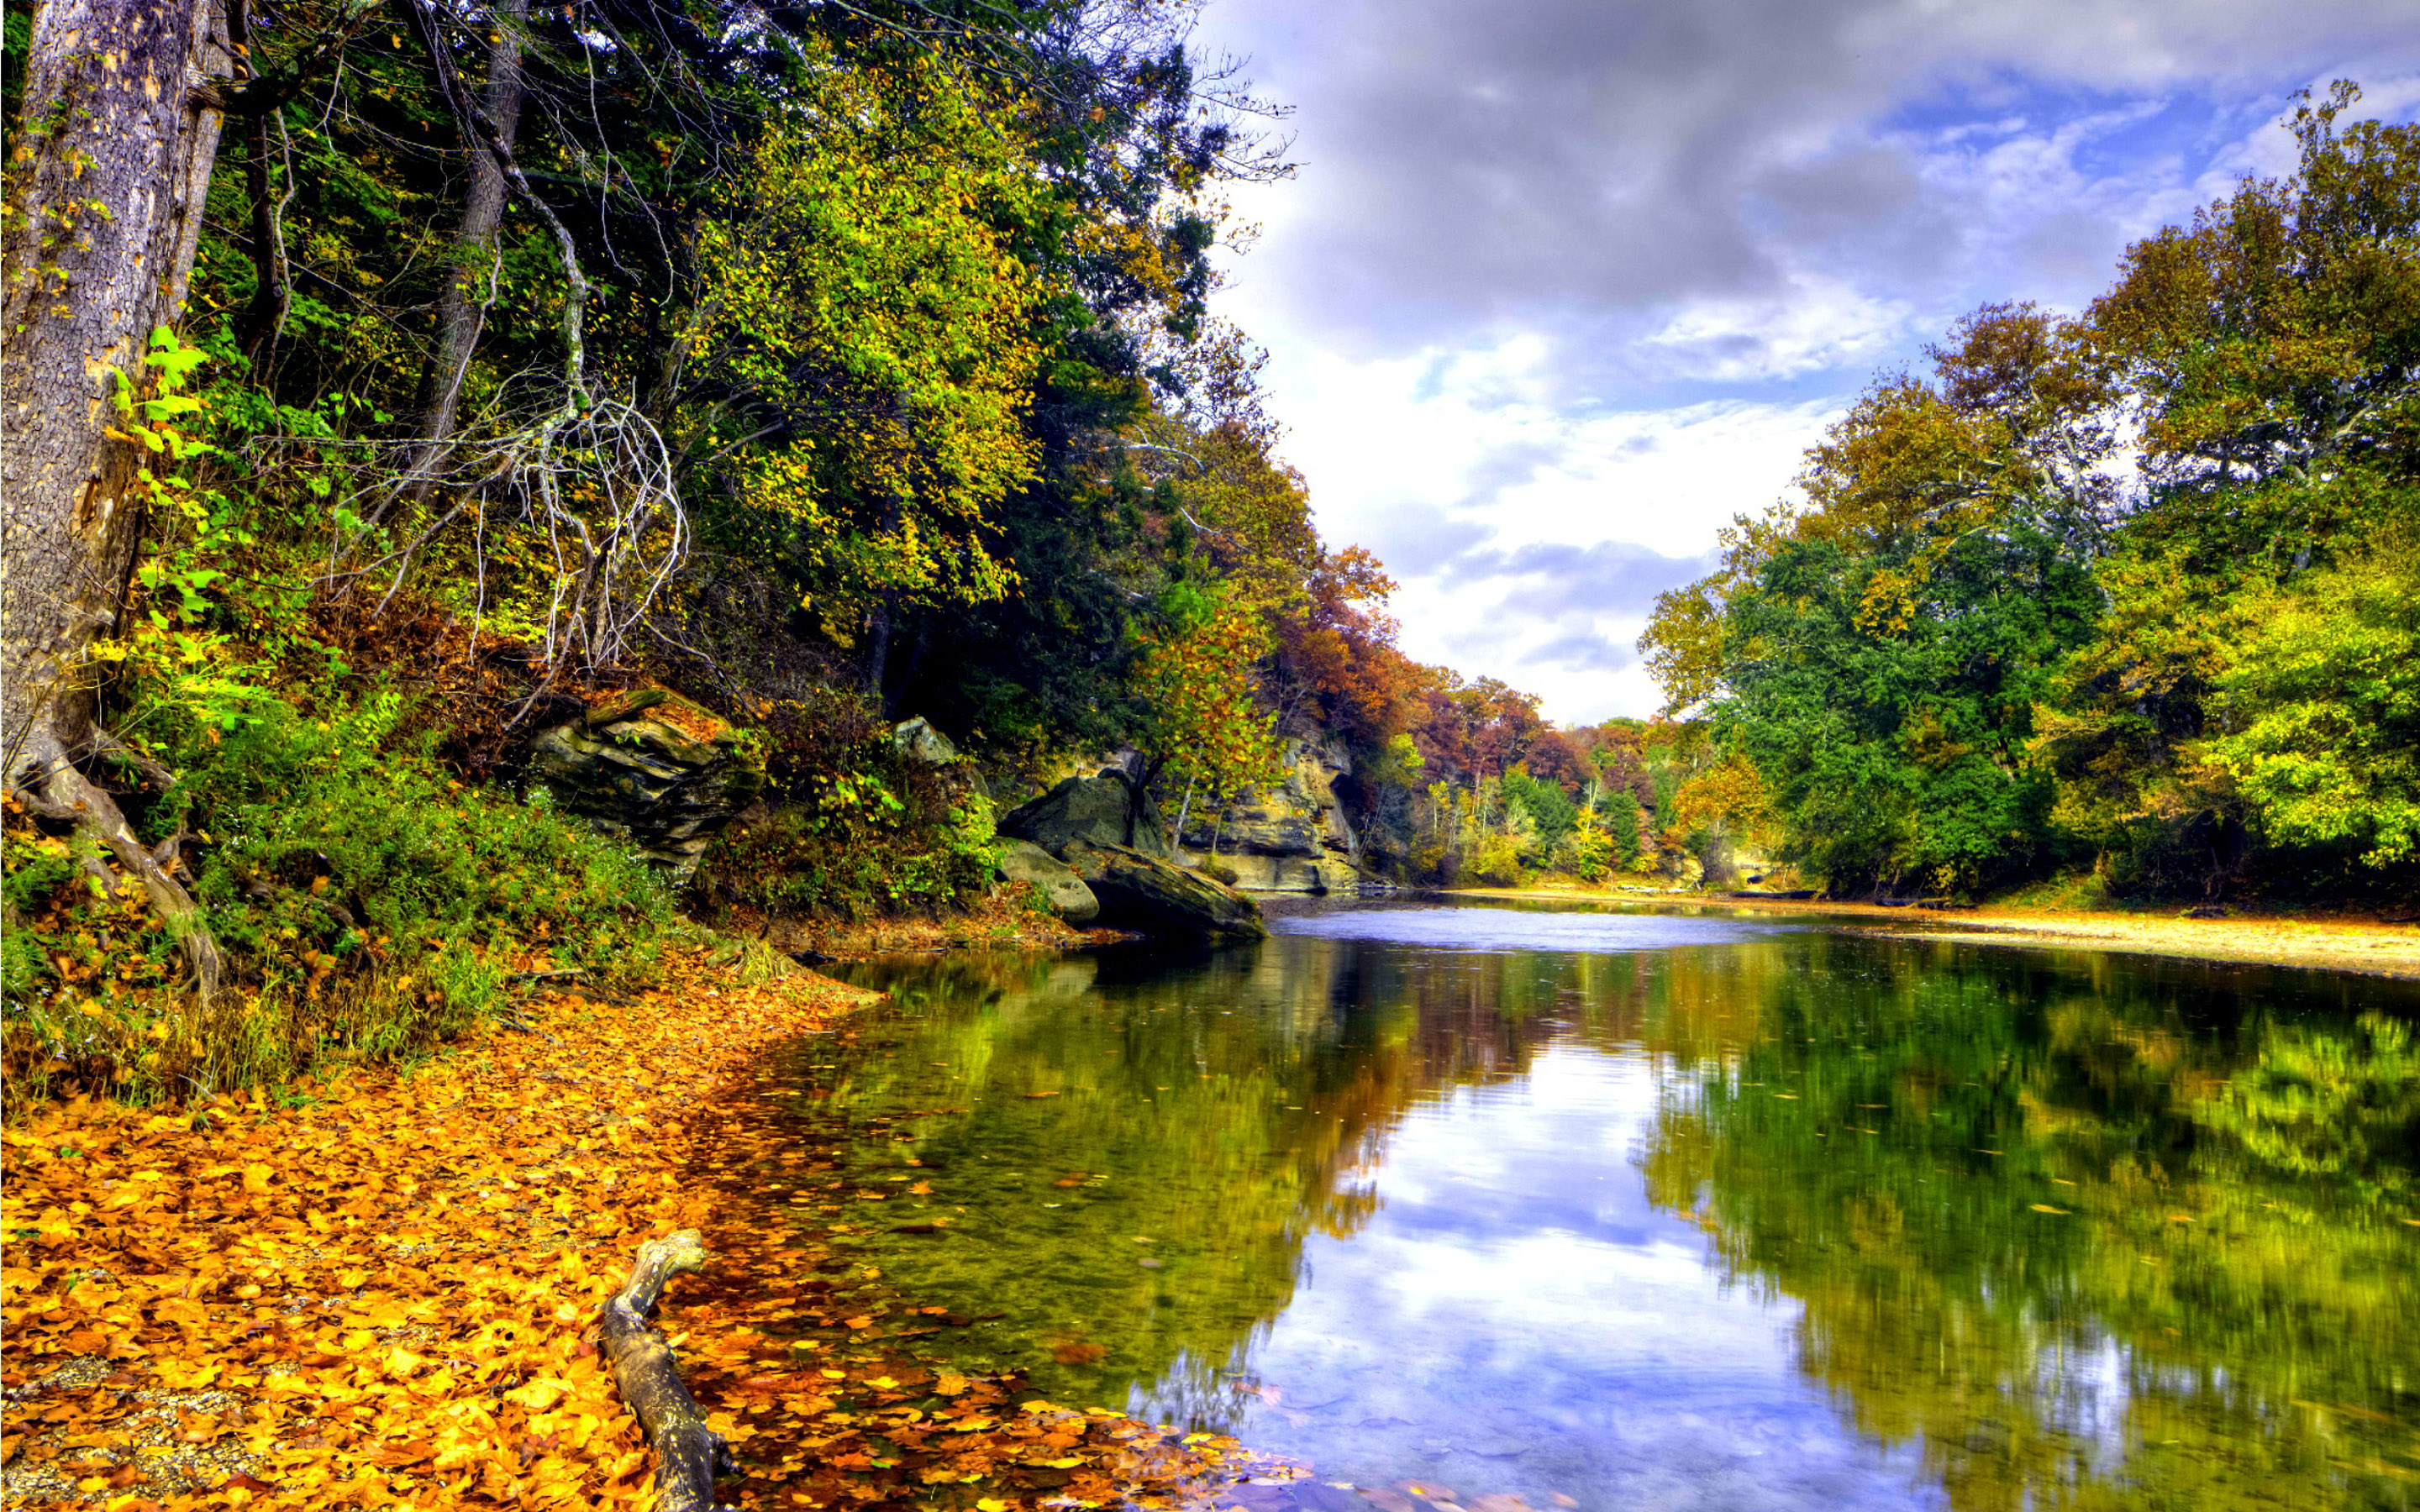 Fall Wallpaper And Screensavers For Free Landscape Autumn Mountain River Mirna Deciduous Forest In